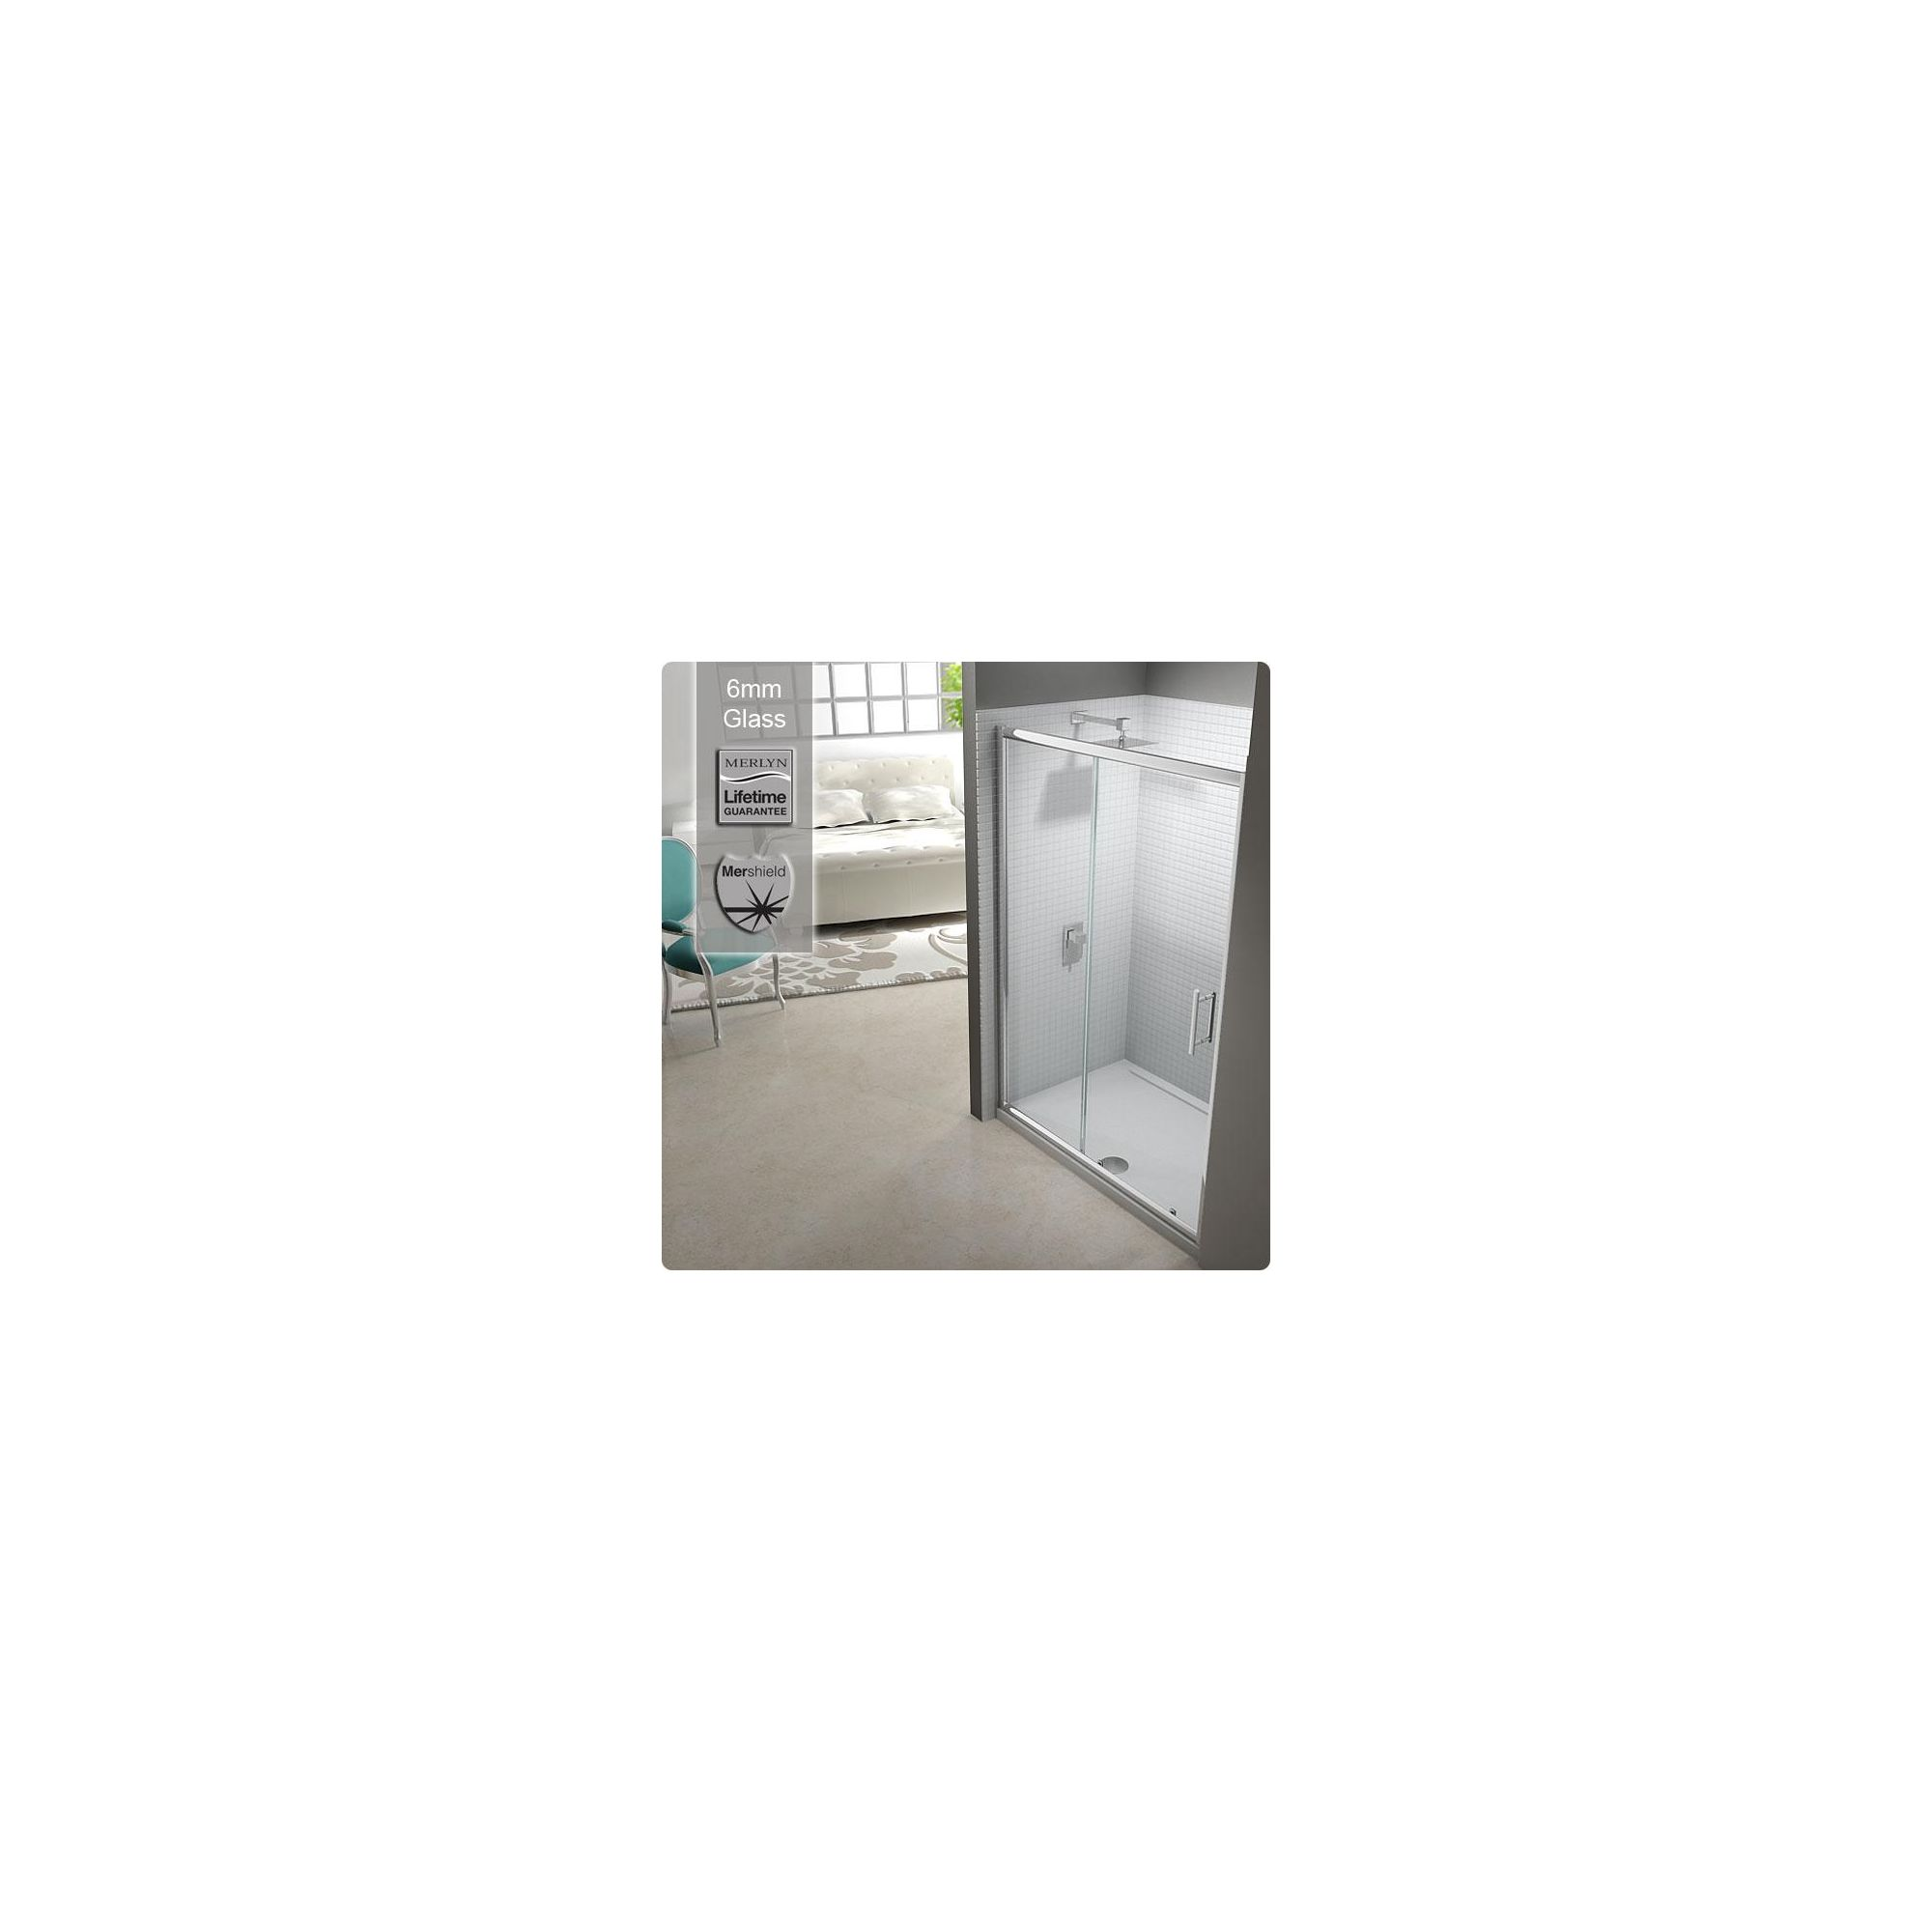 Merlyn Series 6 Sliding Door Shower Enclosure, ALCOVE 1200mm x 900mm, Low Profile Tray, 6mm Glass at Tesco Direct